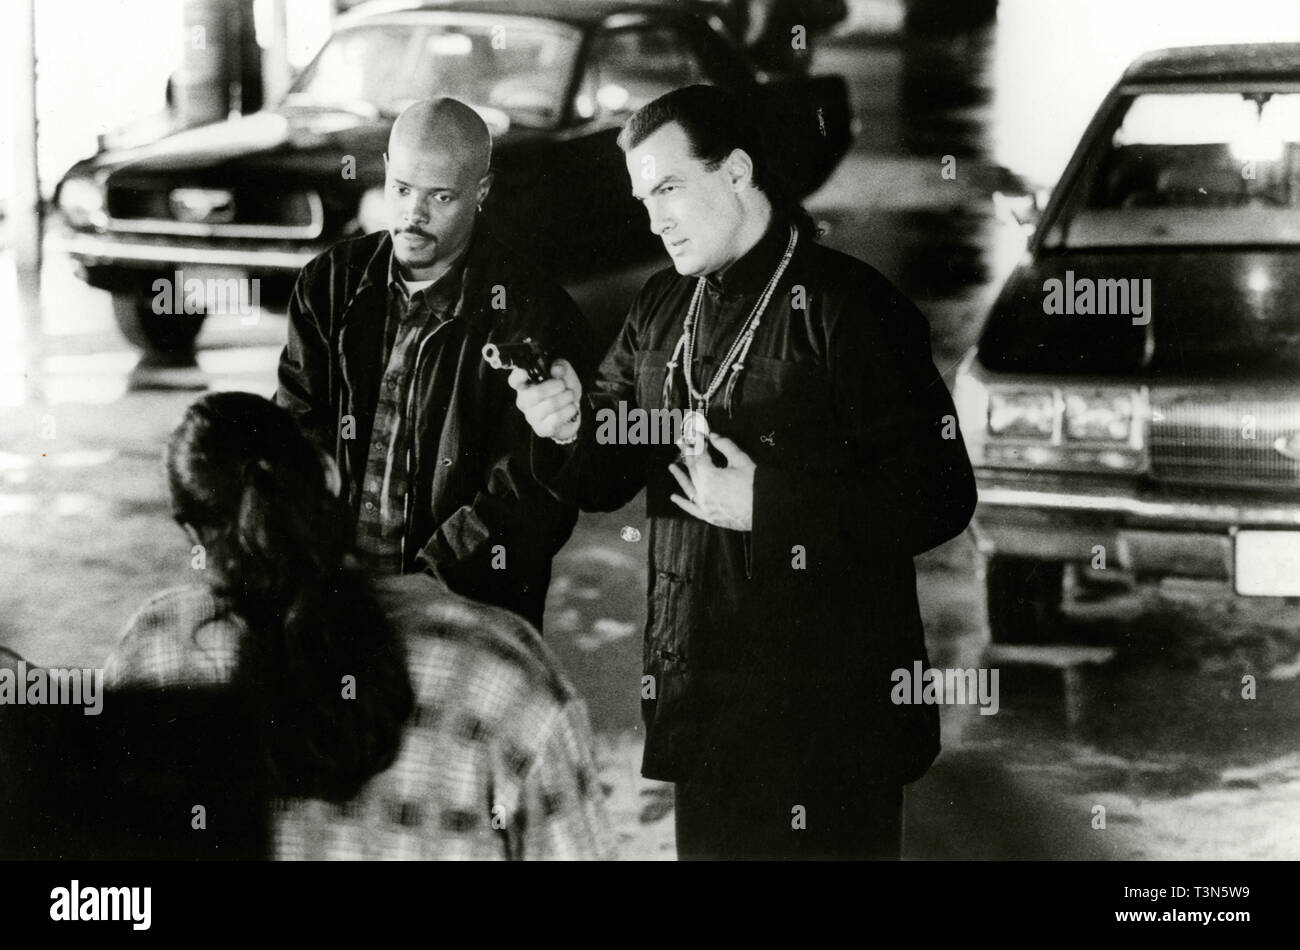 The Glimmer Man 1996 Keenen Ivory Wayans Stock Photos The